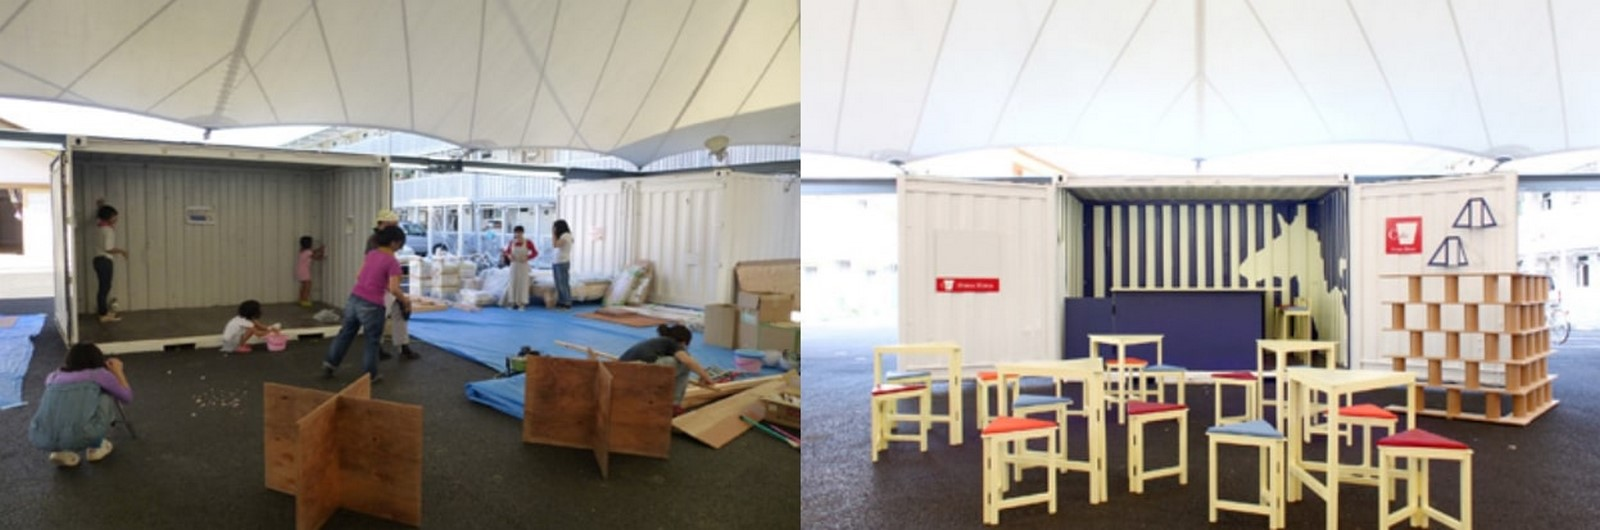 Onagawa Container by Shigeru Ban: Temporary Structures with Impactful Design Sheet14